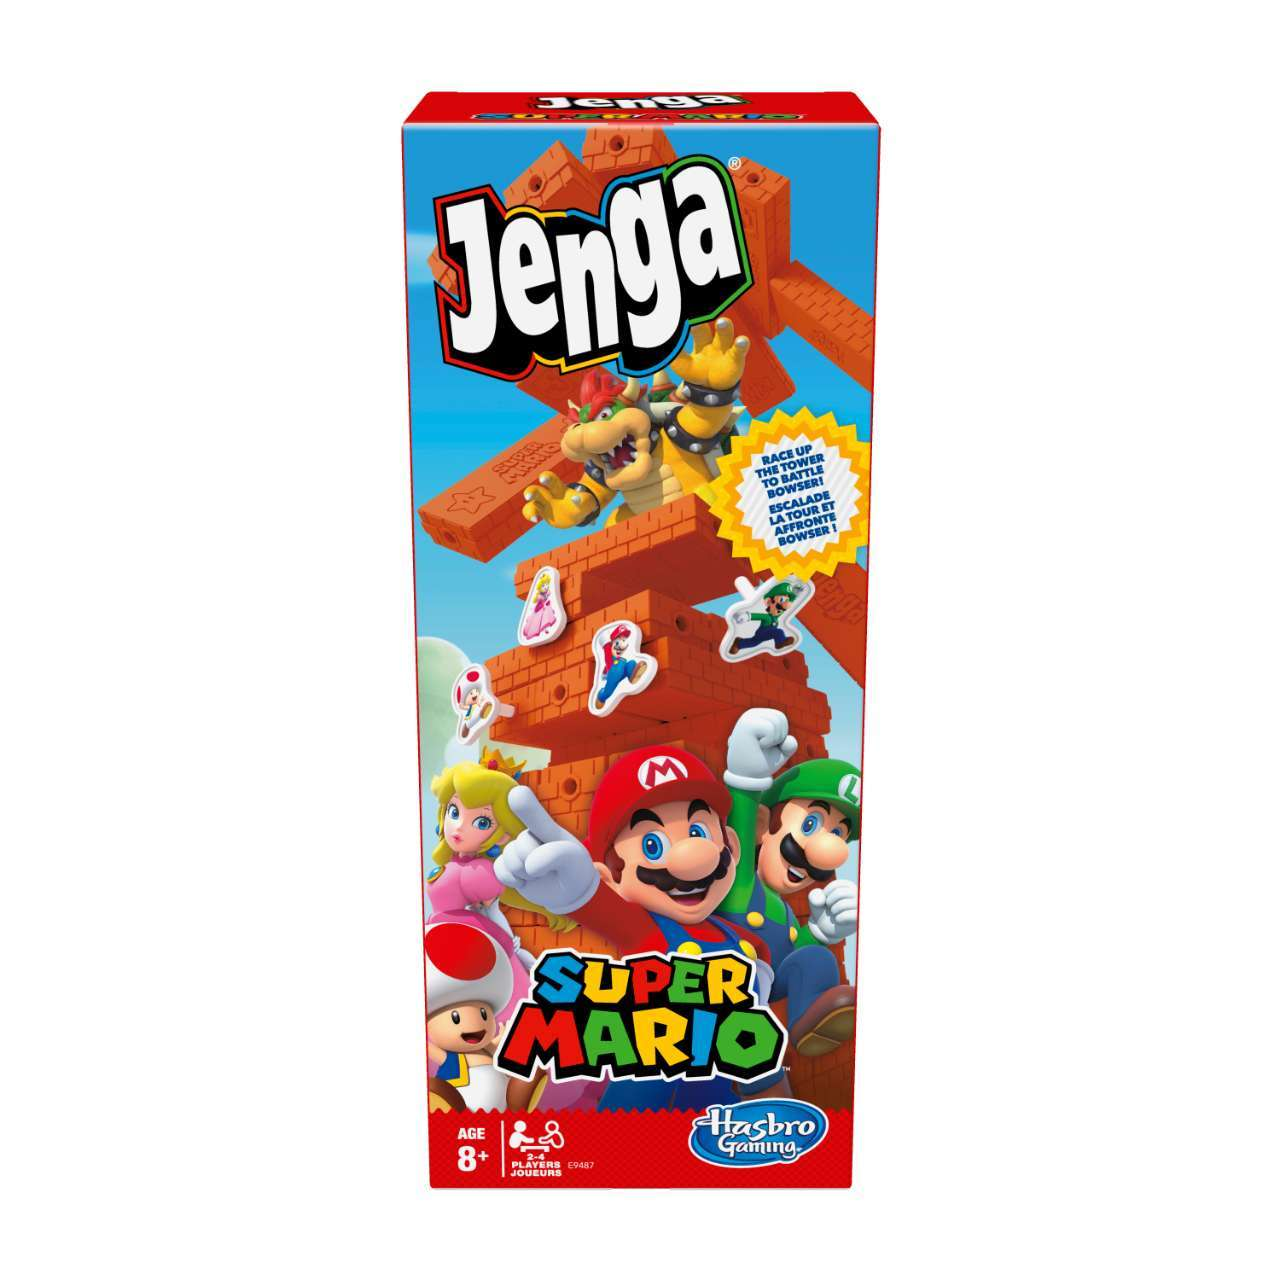 Jenga Super Mario_ Packaging